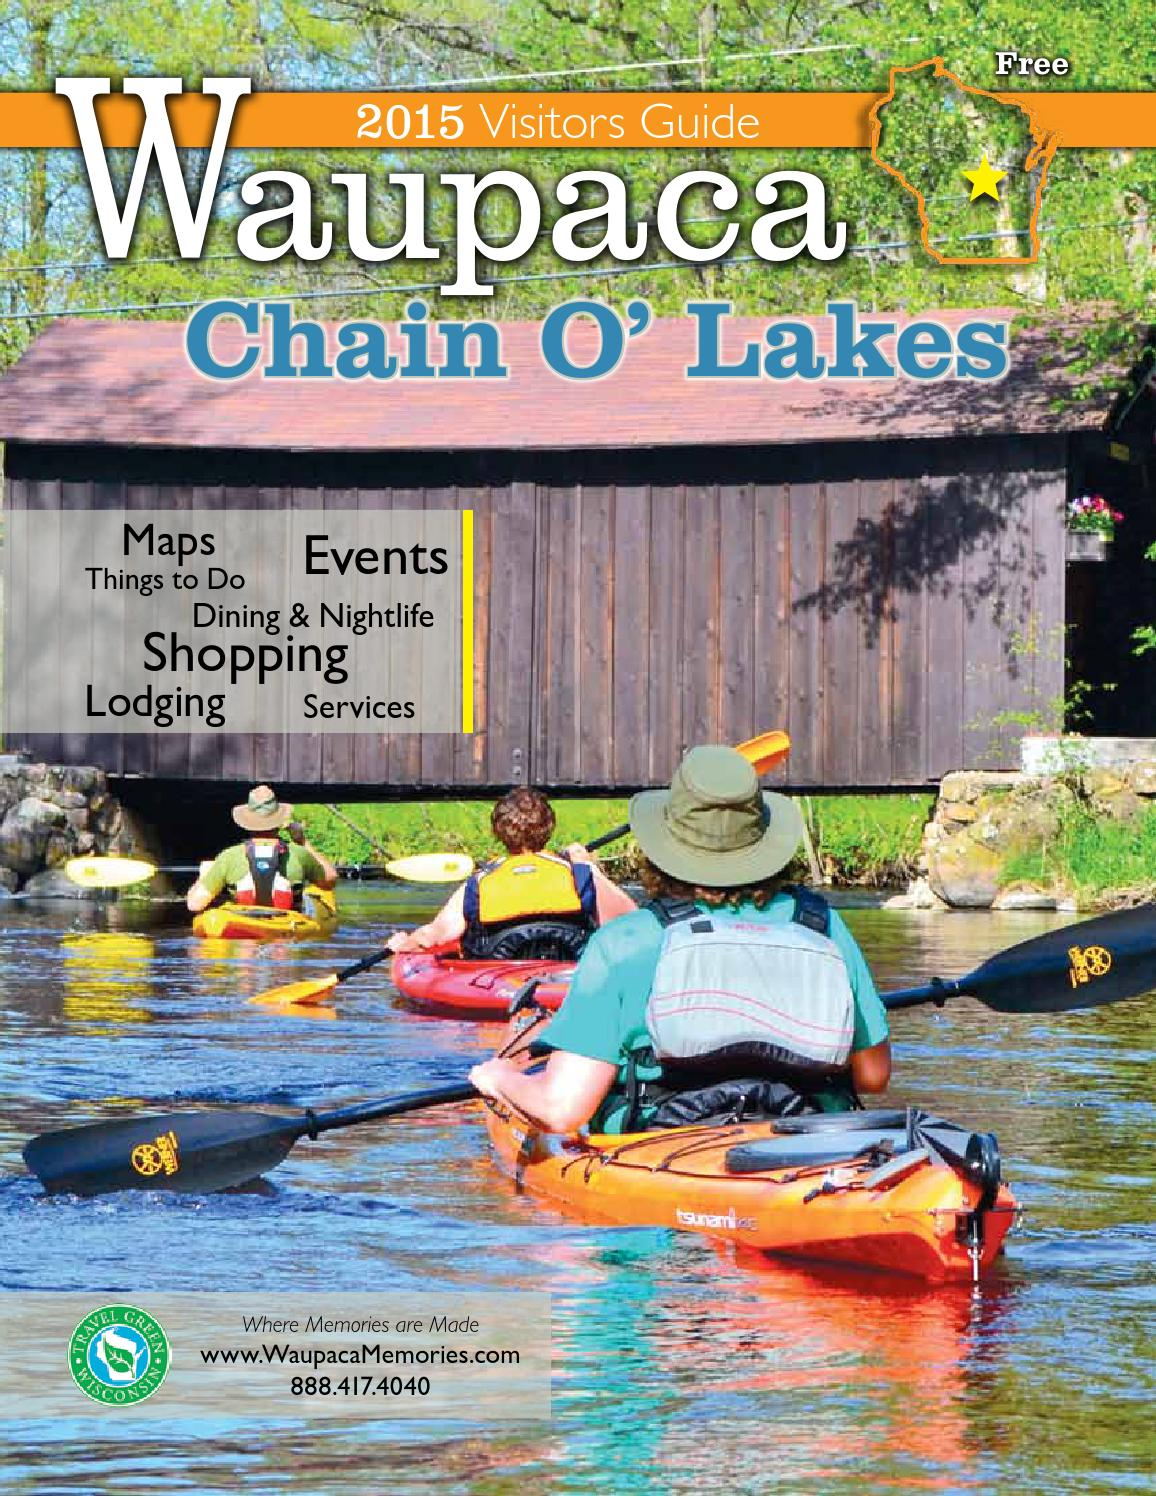 Iola Winter Carnival 2020.2015 Waupaca Area Visitor Guide By Waupaca Area Chamber Of